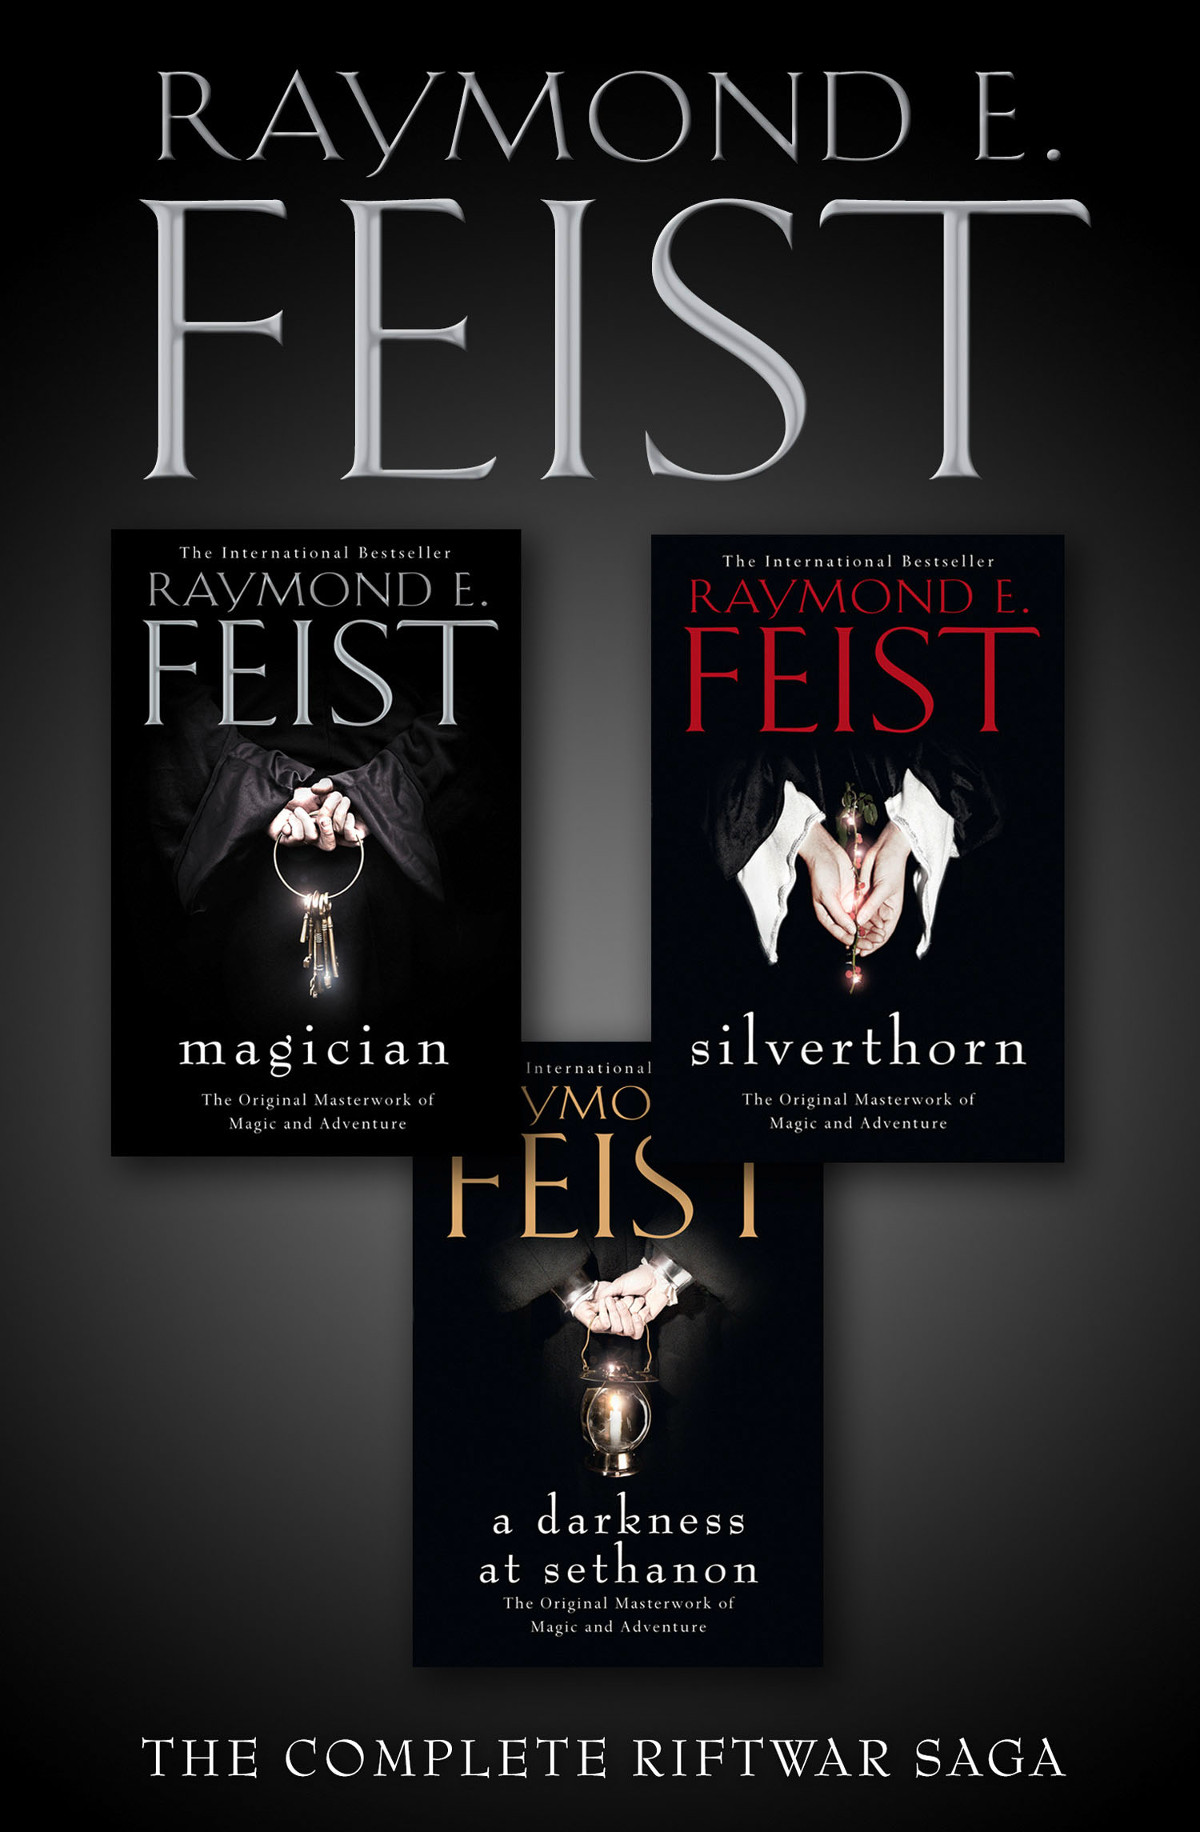 Raymond E. Feist The Complete Riftwar Saga Trilogy: Magician, Silverthorn, A Darkness at Sethanon arthur e jongsma the complete adult psychotherapy treatment planner